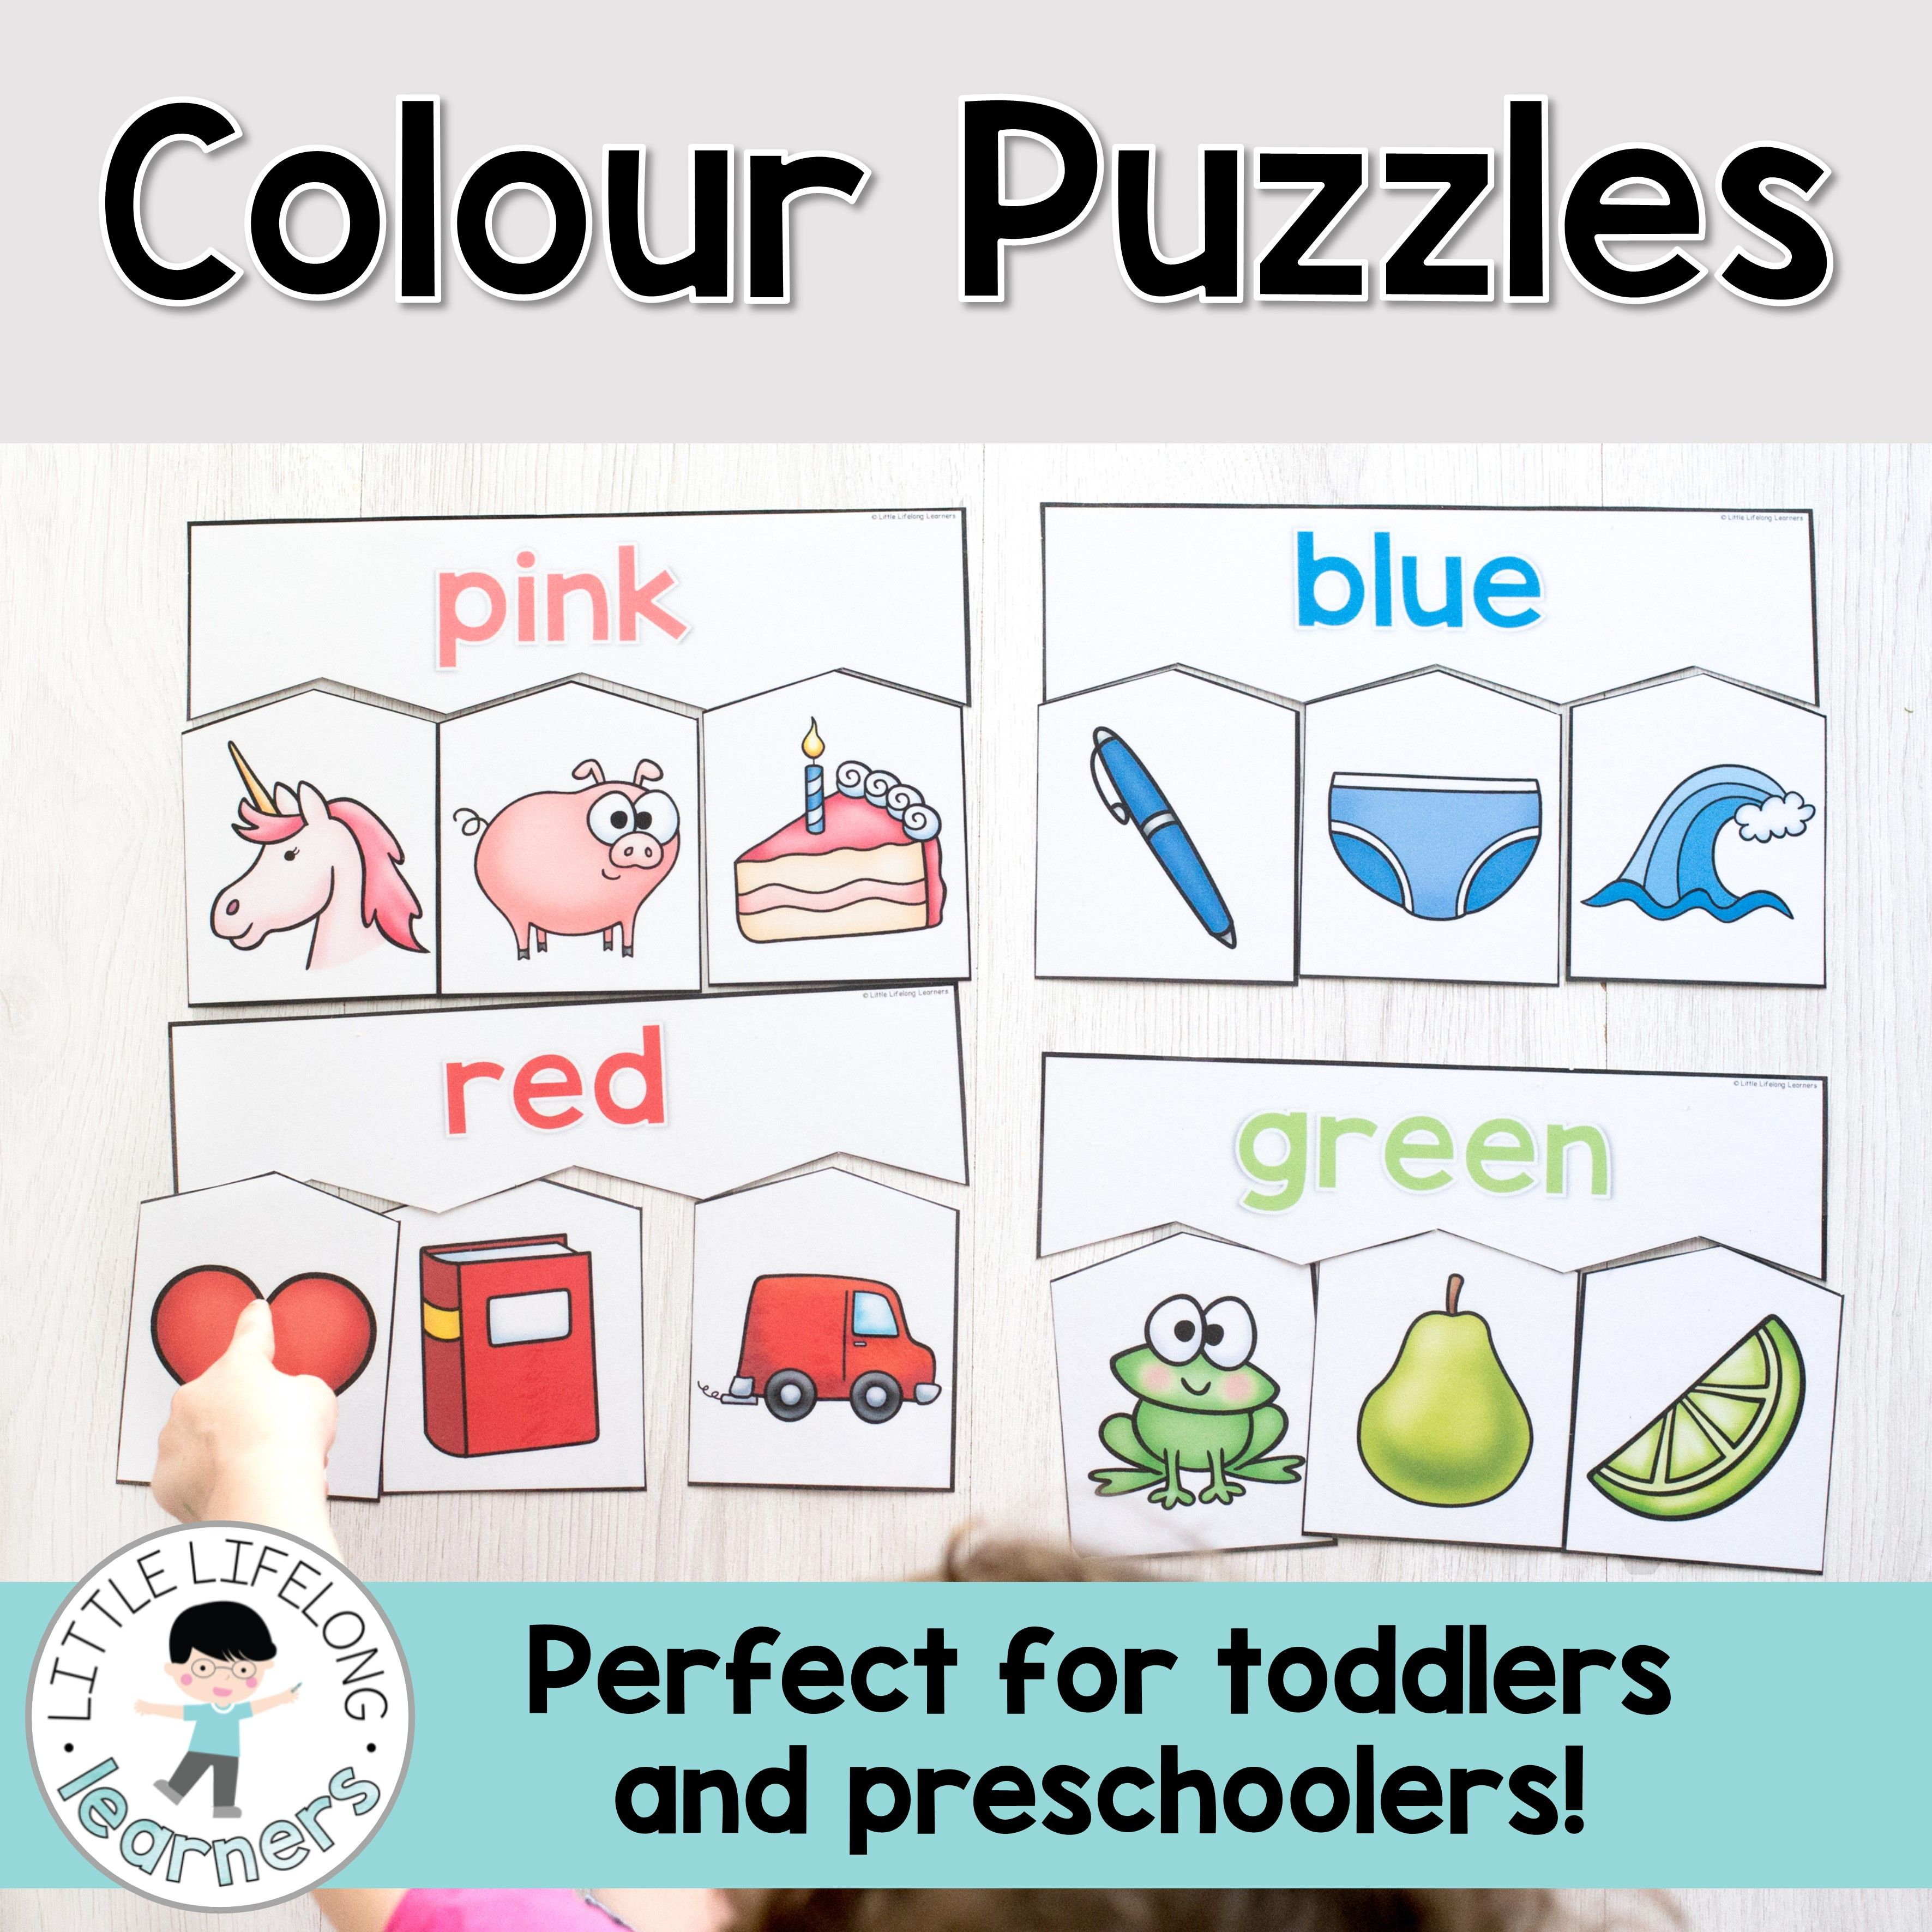 Colour Puzzles For Toddlers And Preschoolers | Toddler And - Printable Puzzle For 3 Year Old